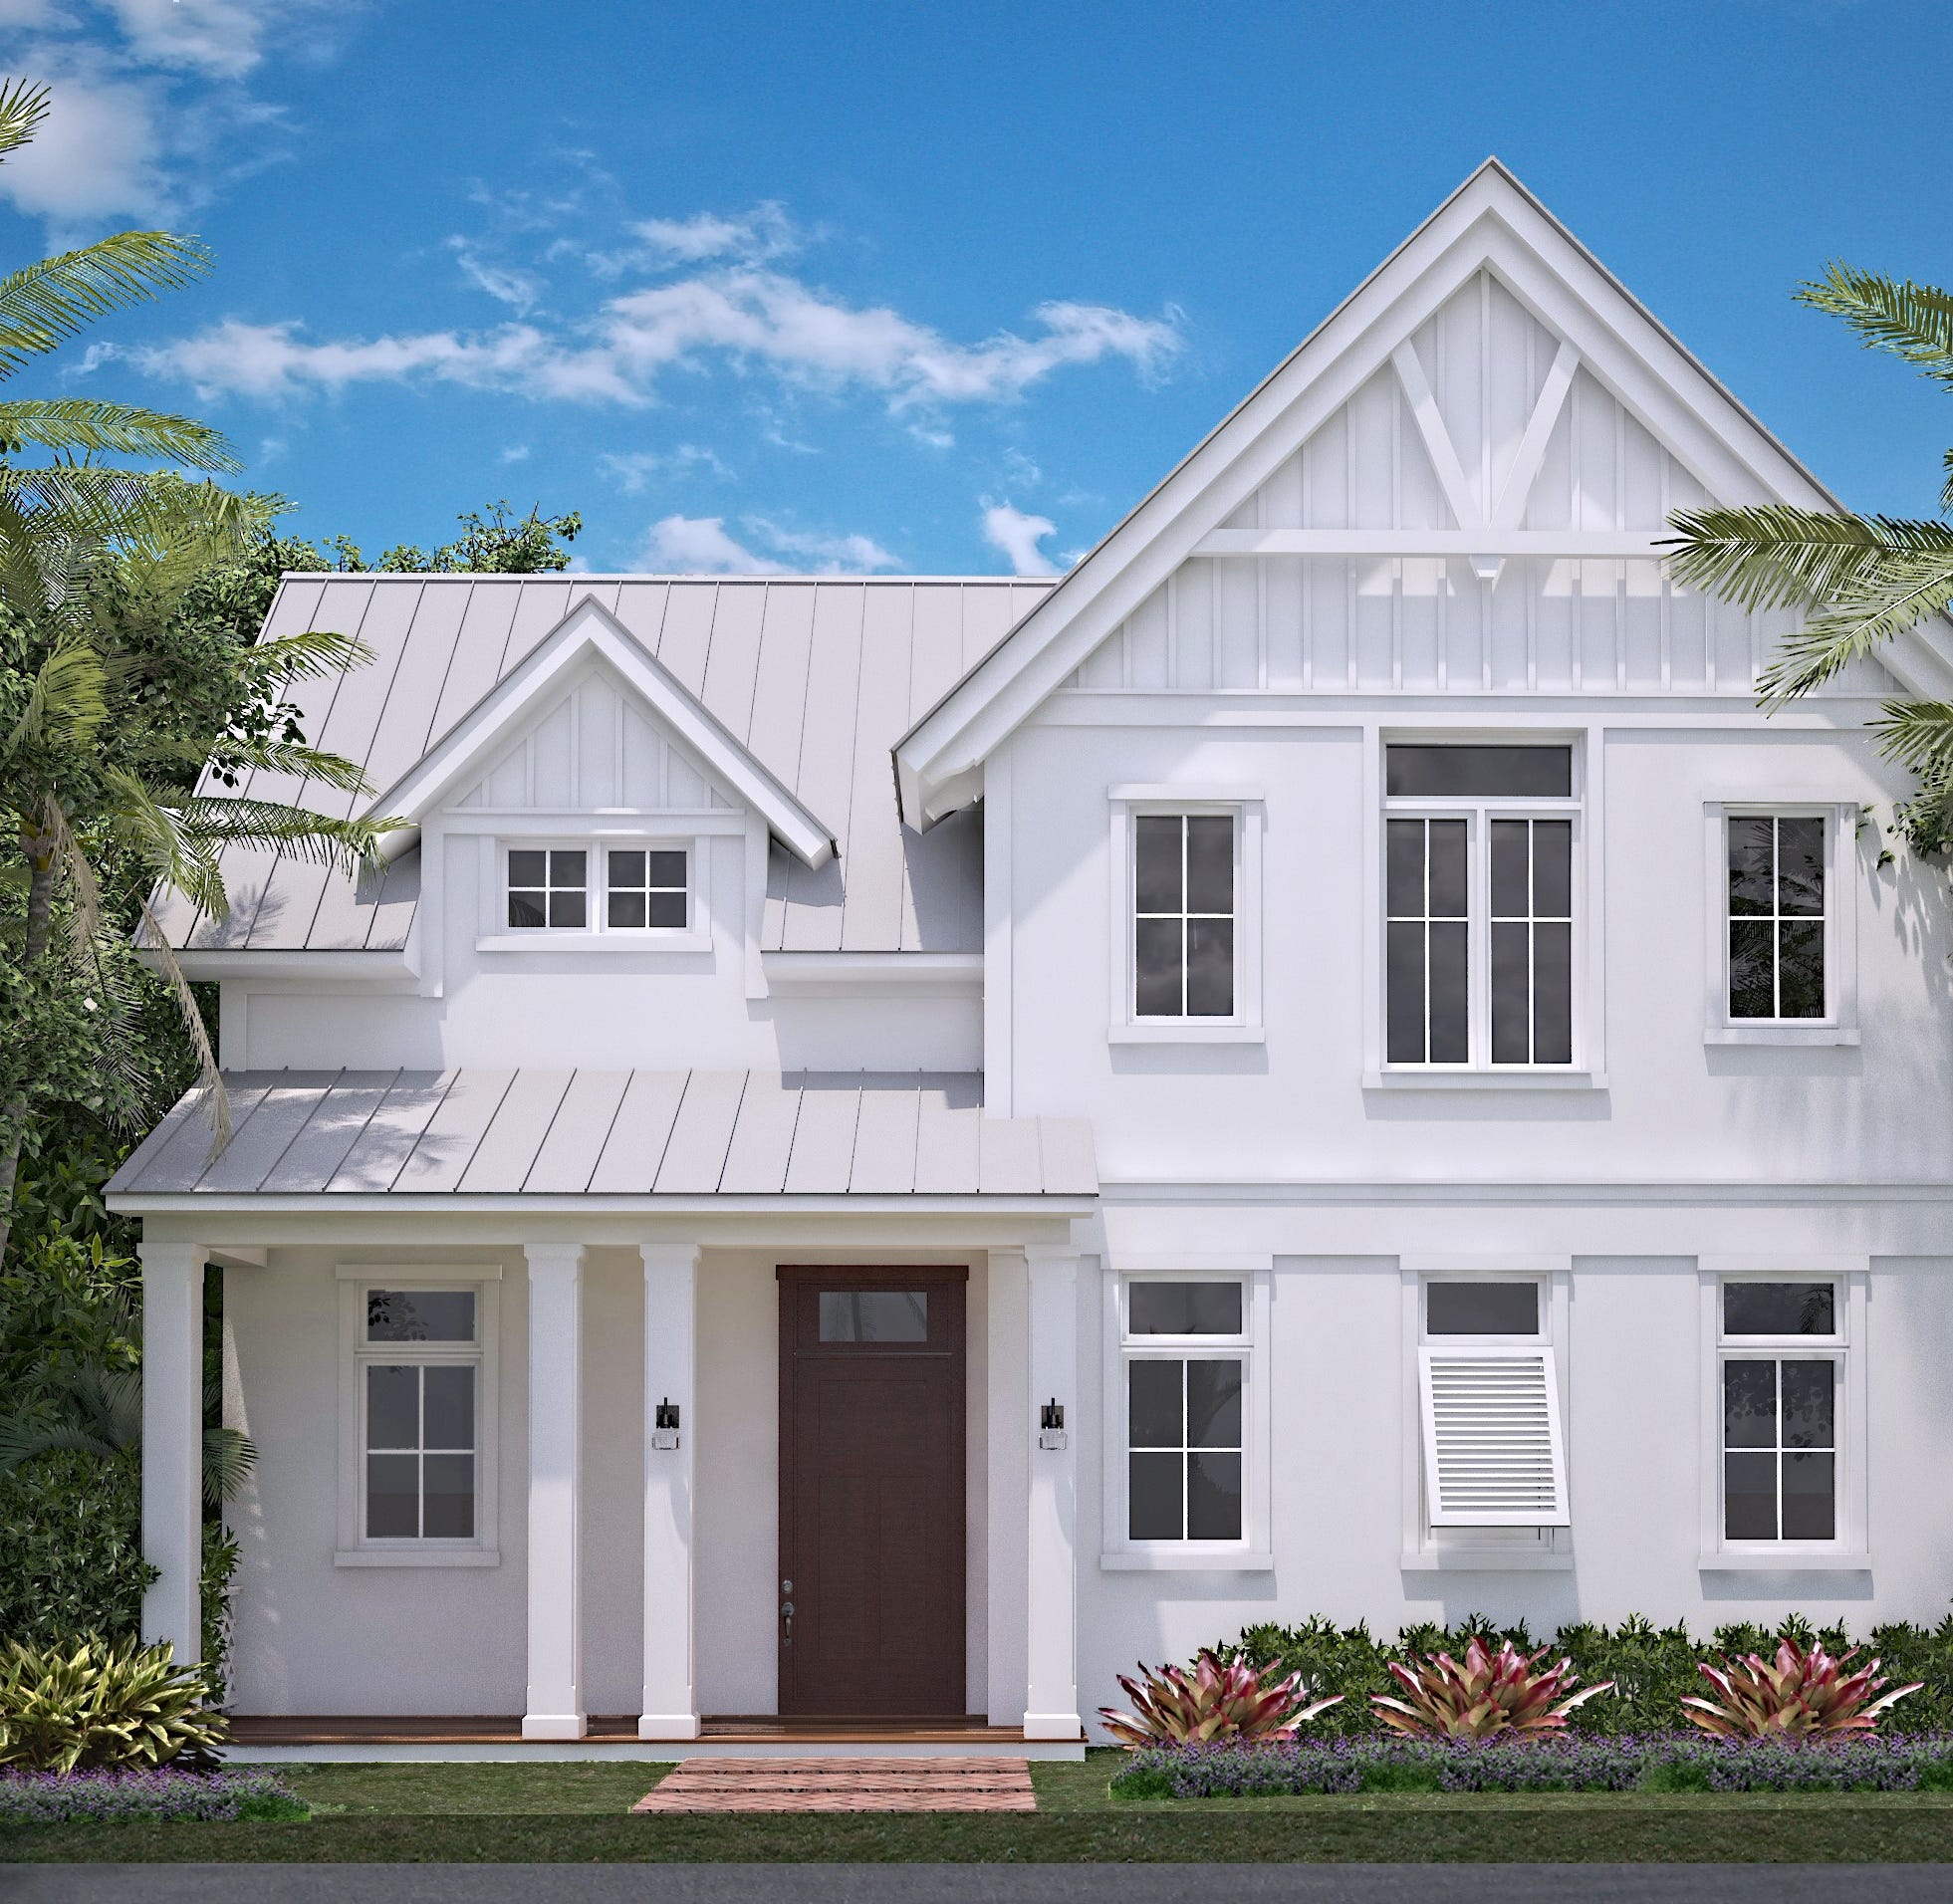 Clive Daniel Home chosen for Coquina model at Mangrove Bay